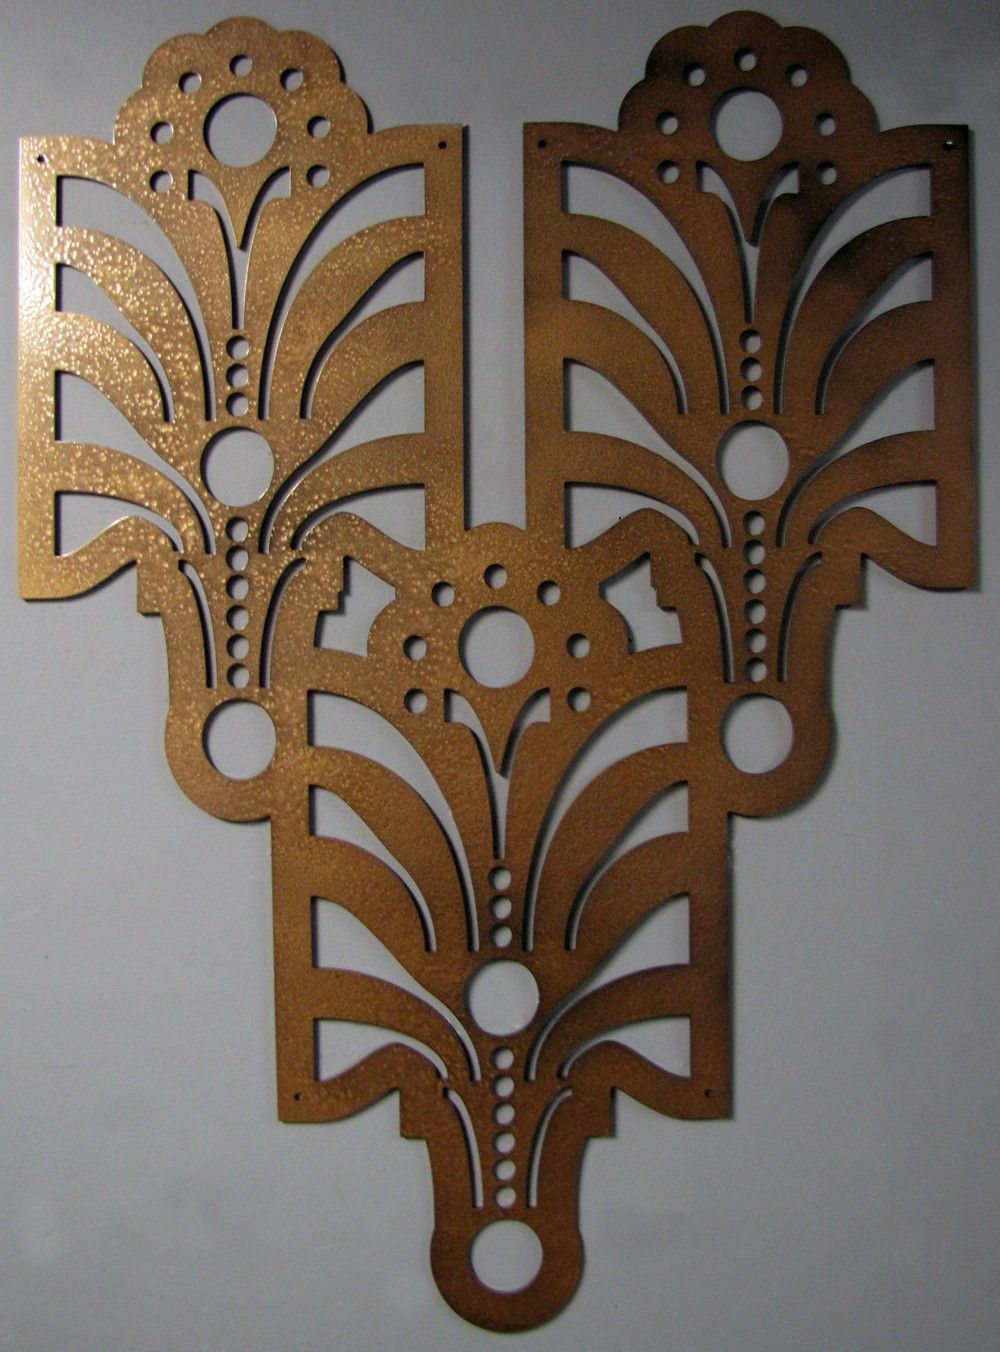 Superior Art Deco Arts And Craft Decorative Wall Art In Tiger Eye 23 X 33 CLEARANCE.  $80.00, Via Etsy.